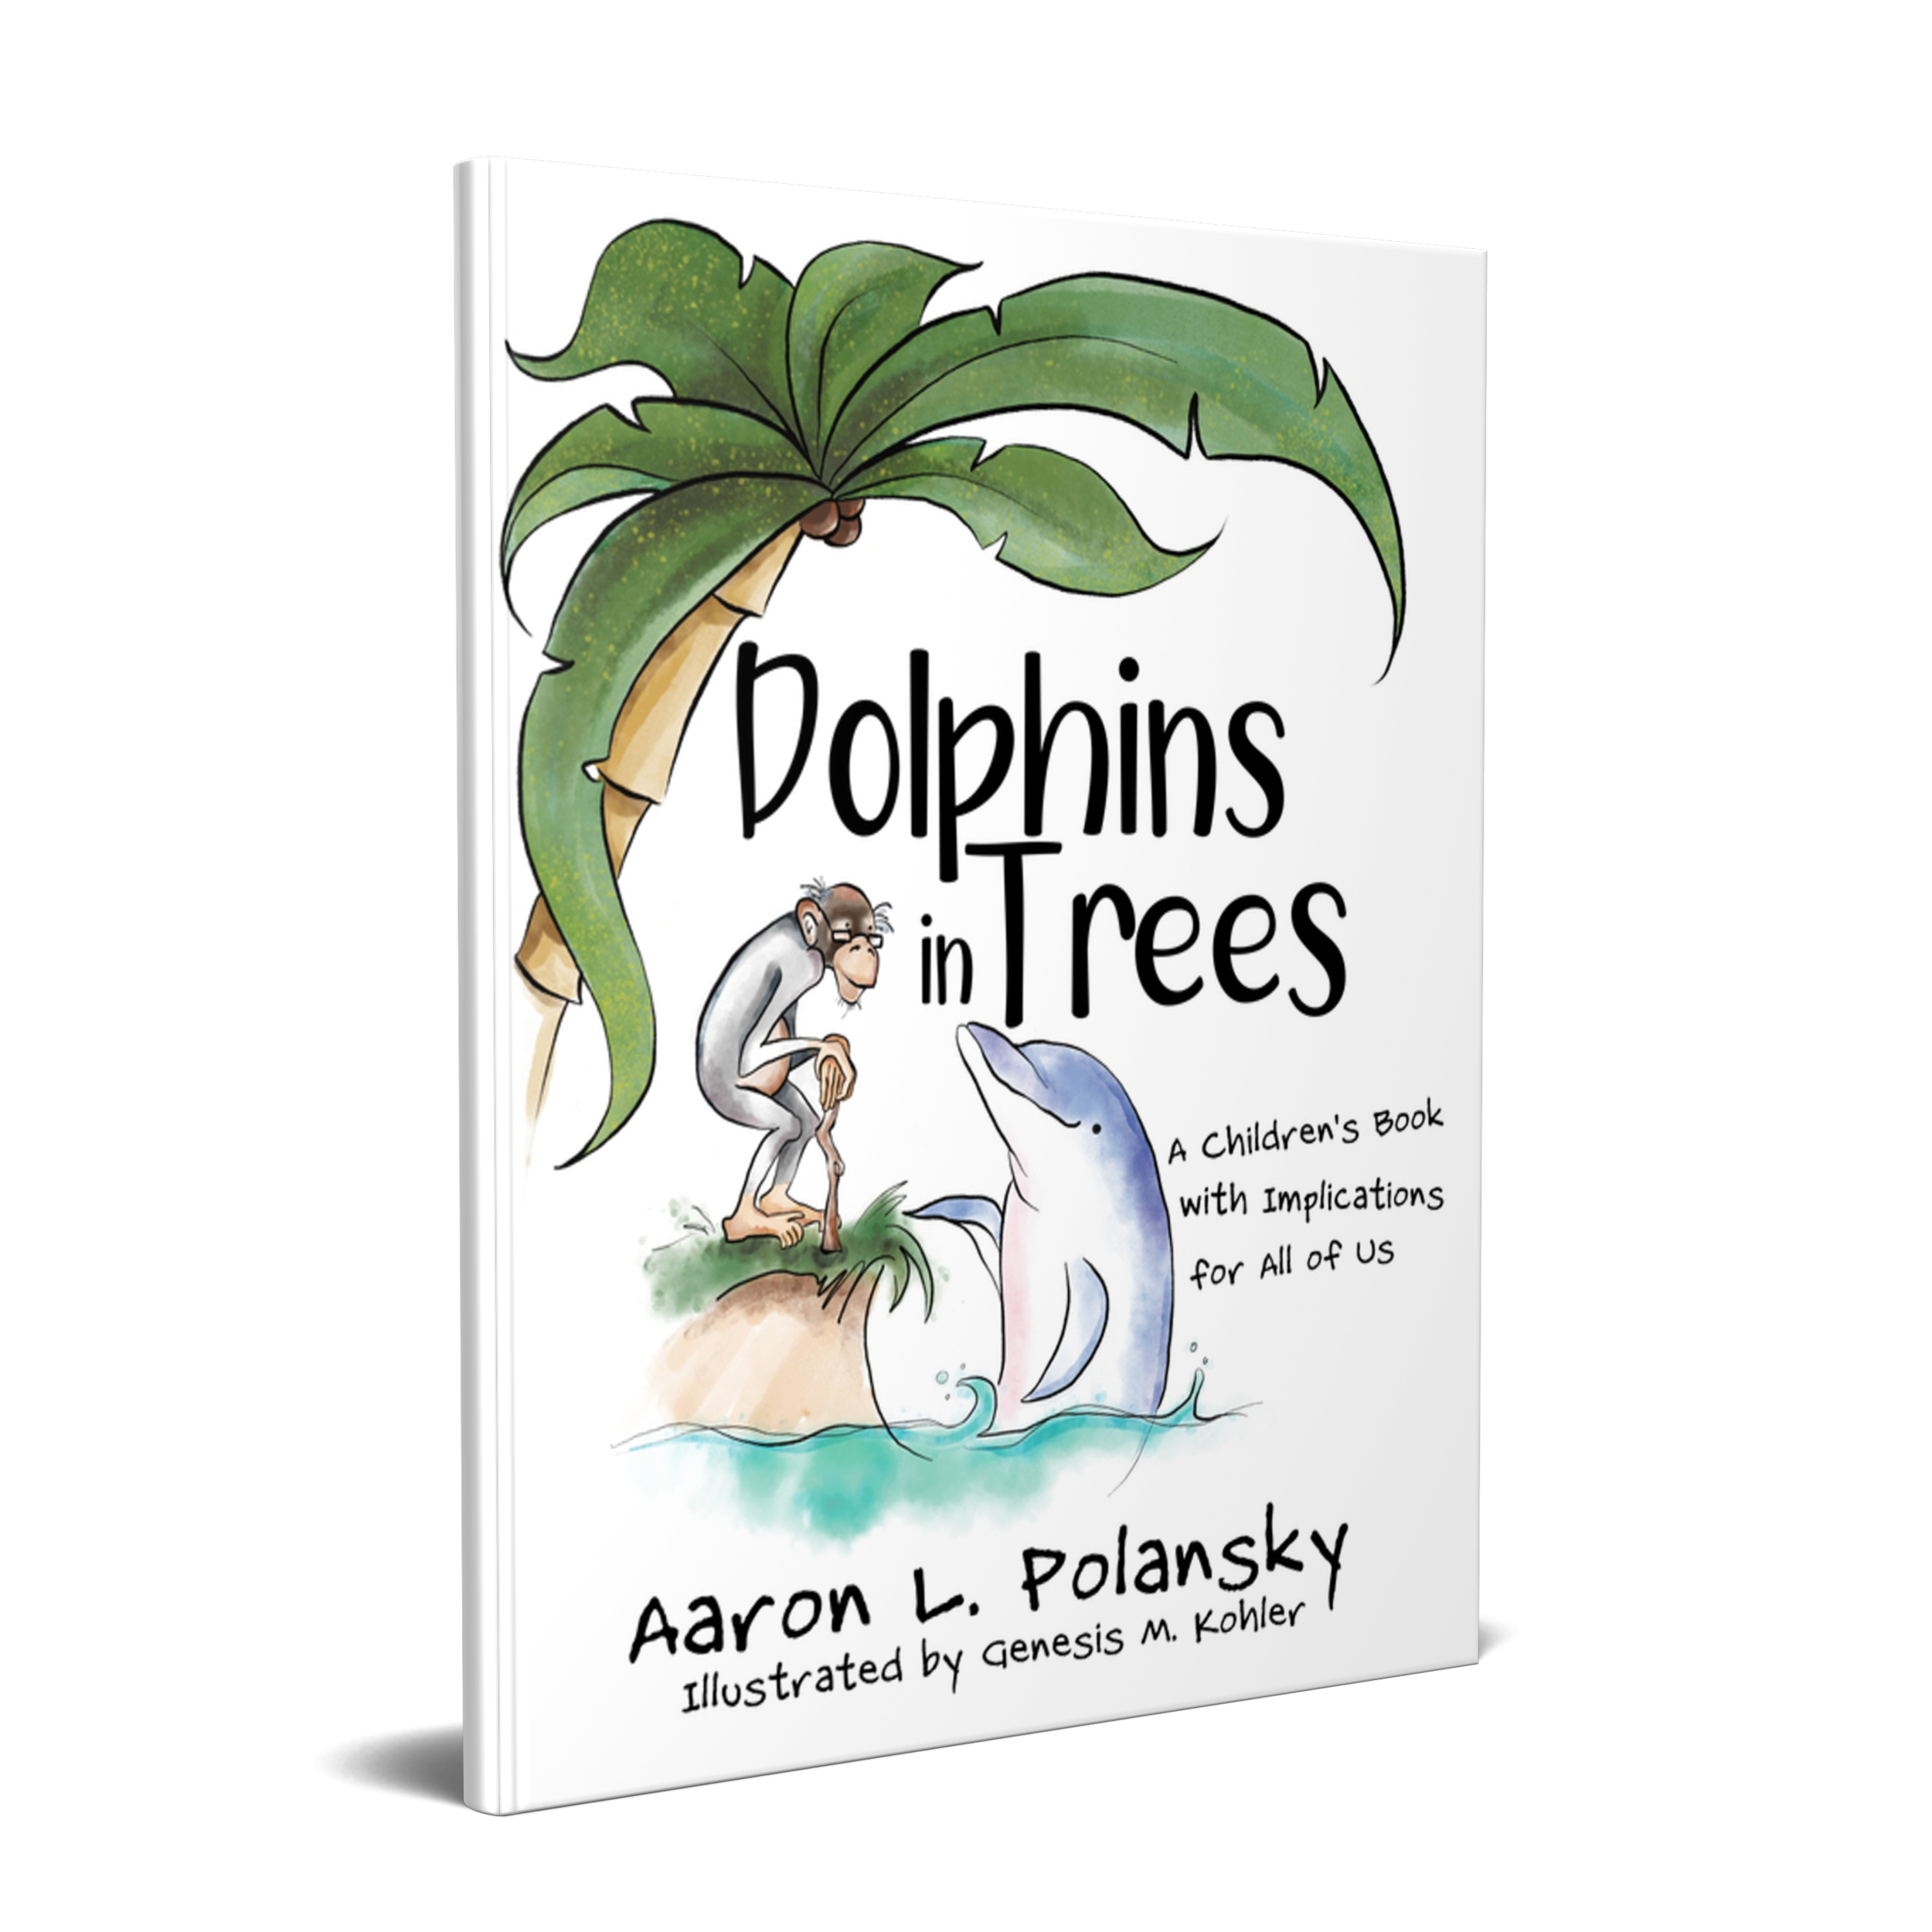 Dr. Seuss meets Tony Robbins in Dolphins in Trees, A Children's Book with Implications for All of Us. Growth mindset, self-efficacy, empathy, and the power of connection are all highlighted in this instant classic. Doplhins in Trees has been highlighted at conferences nationwide. Dizzy the Dolphin meets Mindful the Monkey after an unlikely chain of events. Lives are transformed as a friendship evolves in a masterpiece that will touch your heart in ways that children's books rarely do.